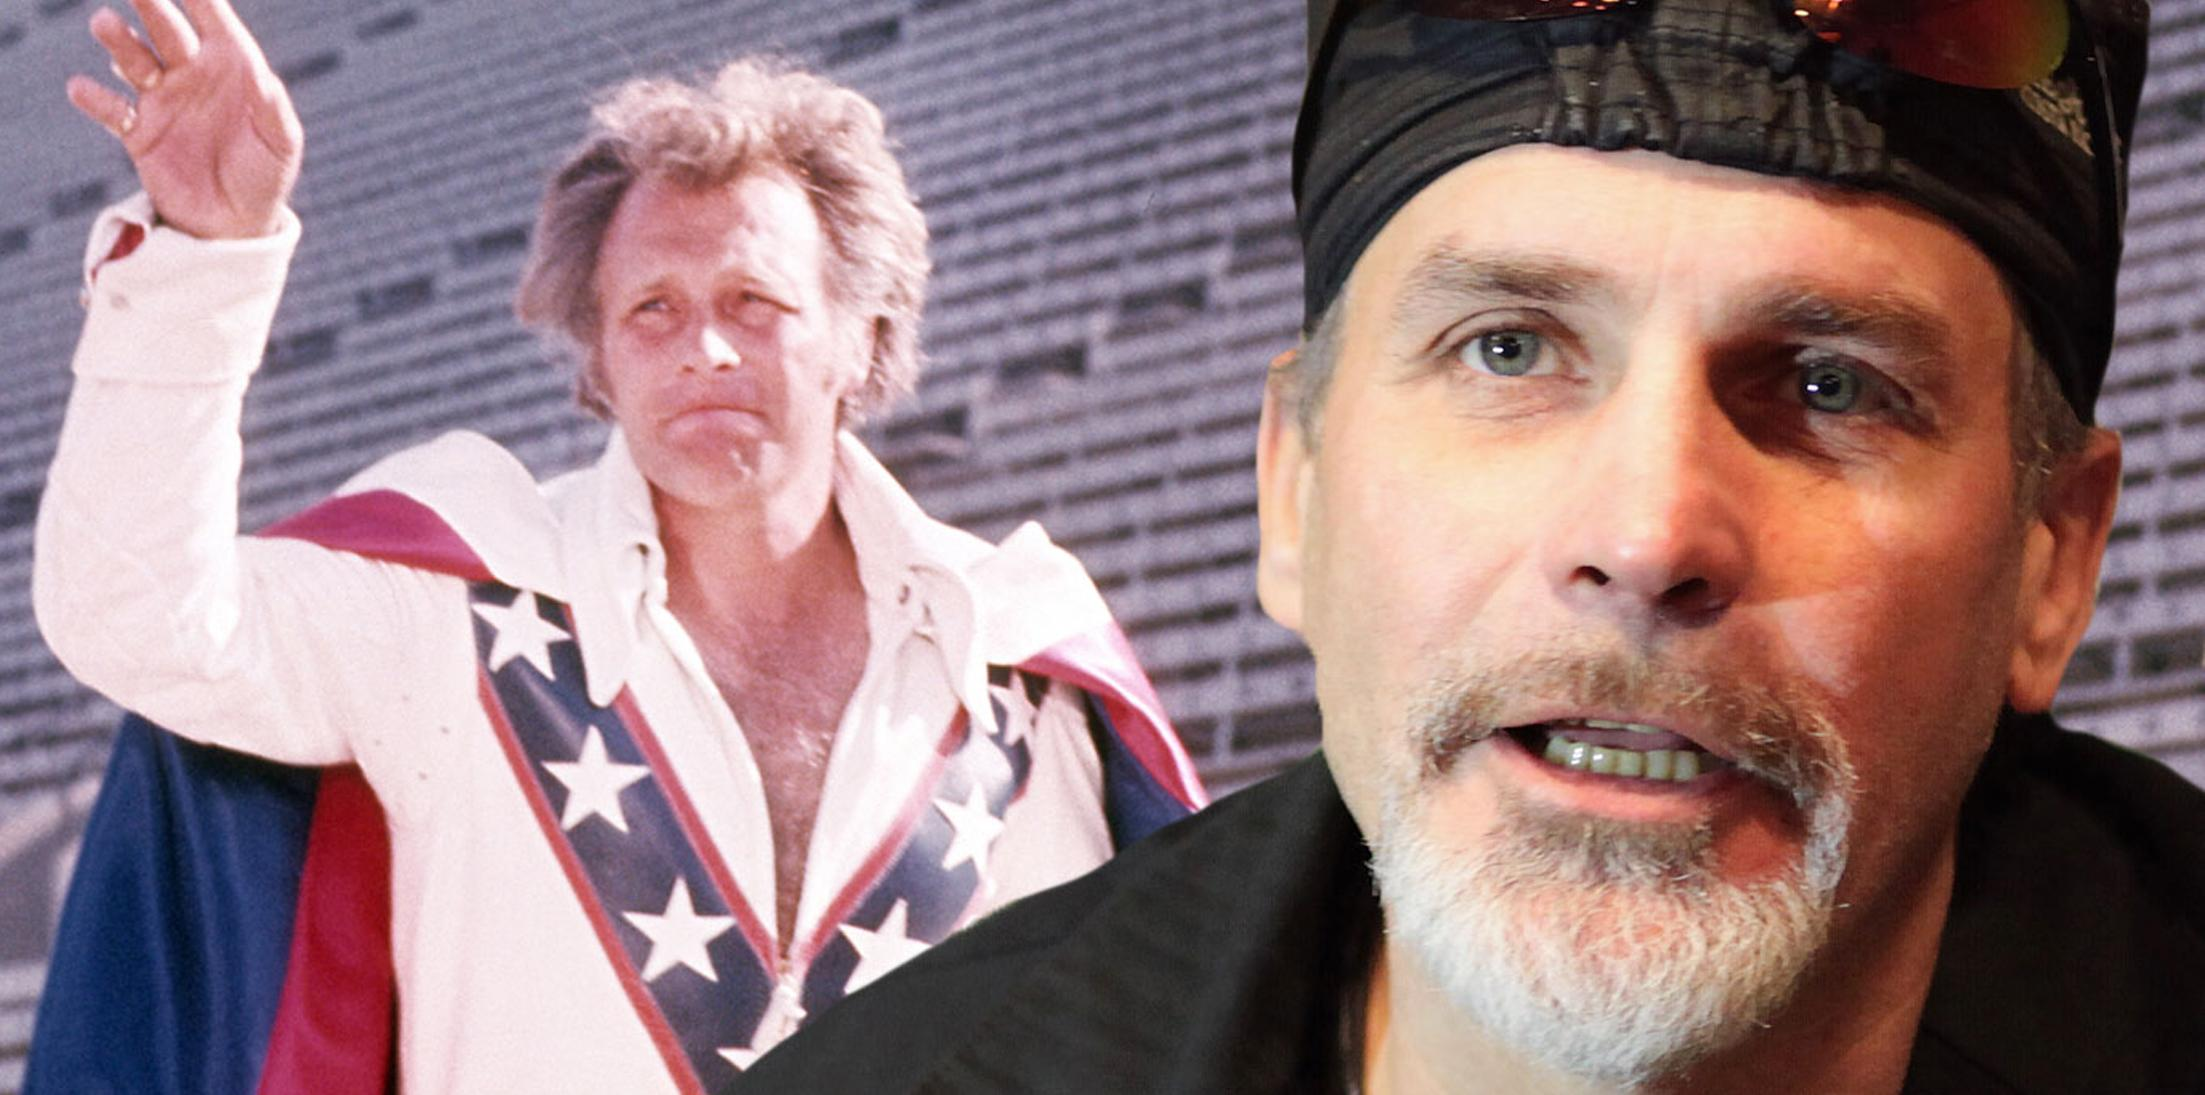 Robbie knievel quest to eclipse father evel knievel pp ok long